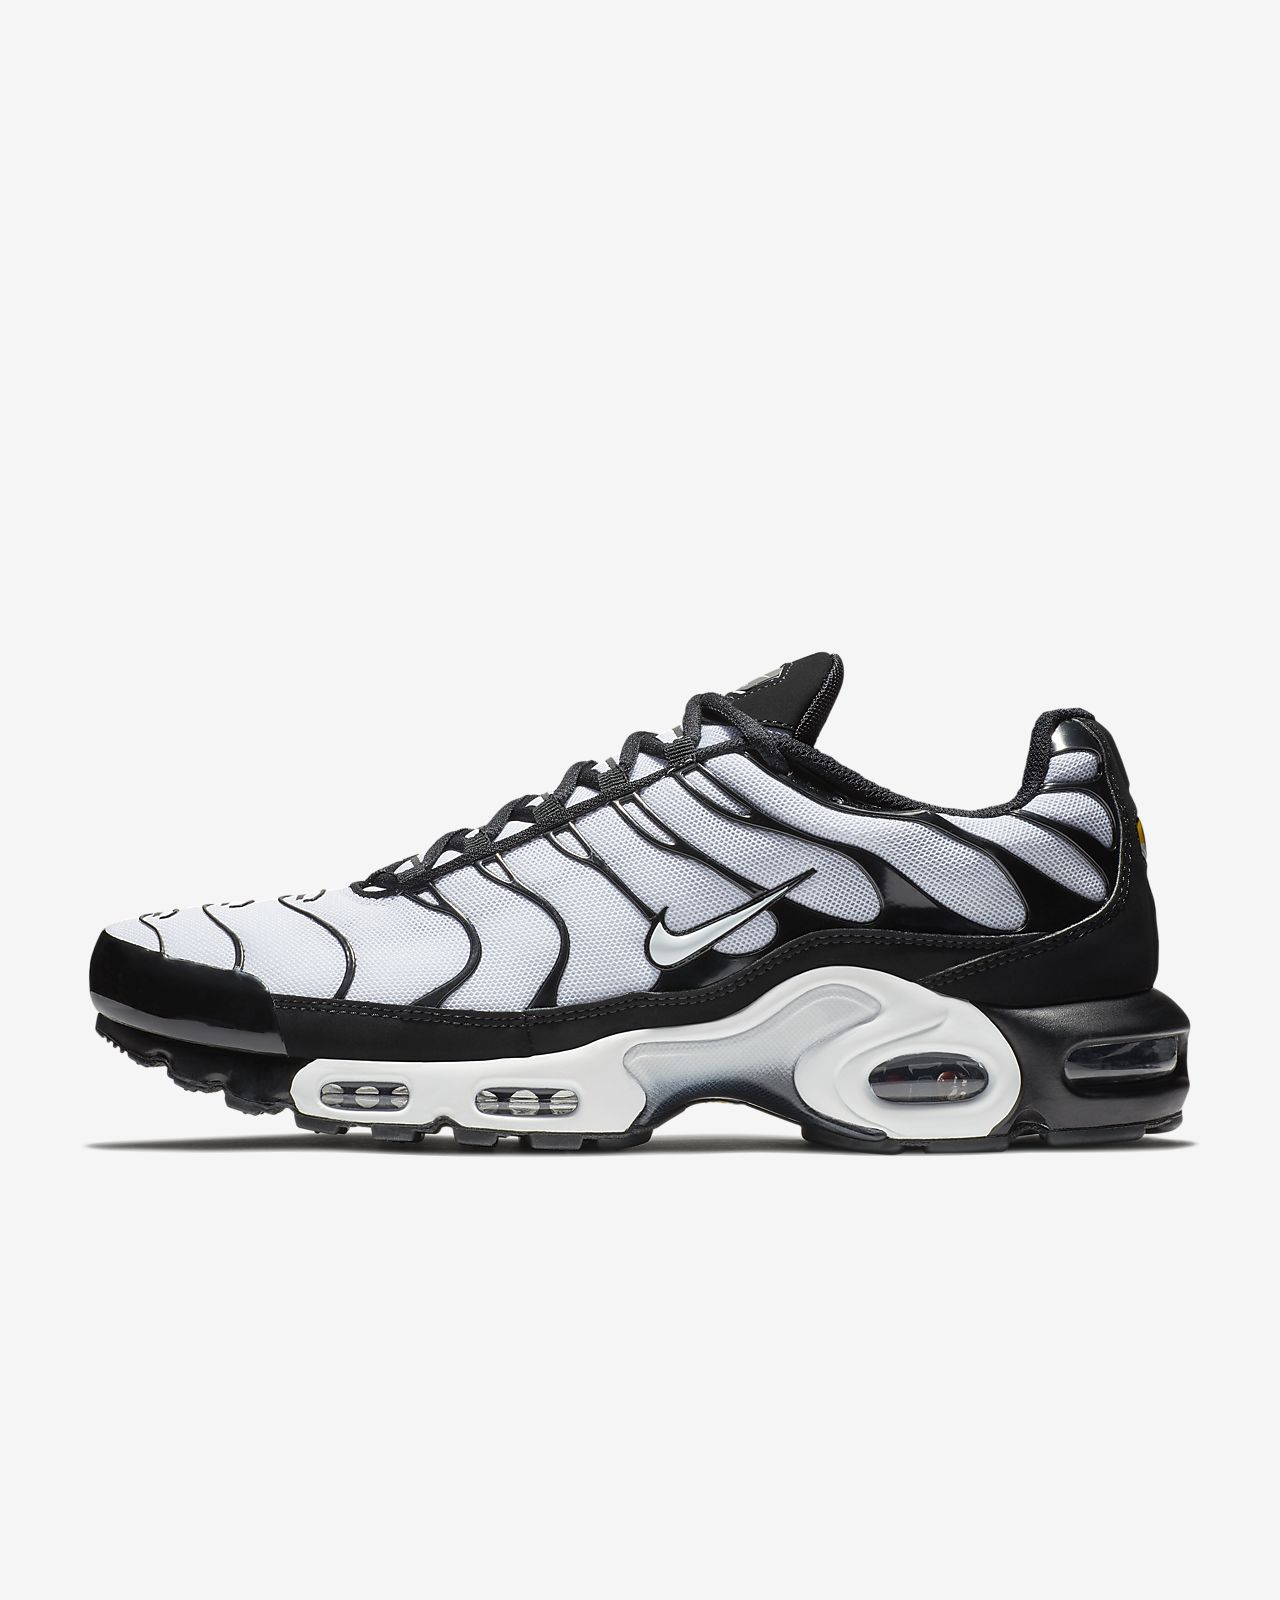 nike air max plus men s shoe nike com ch